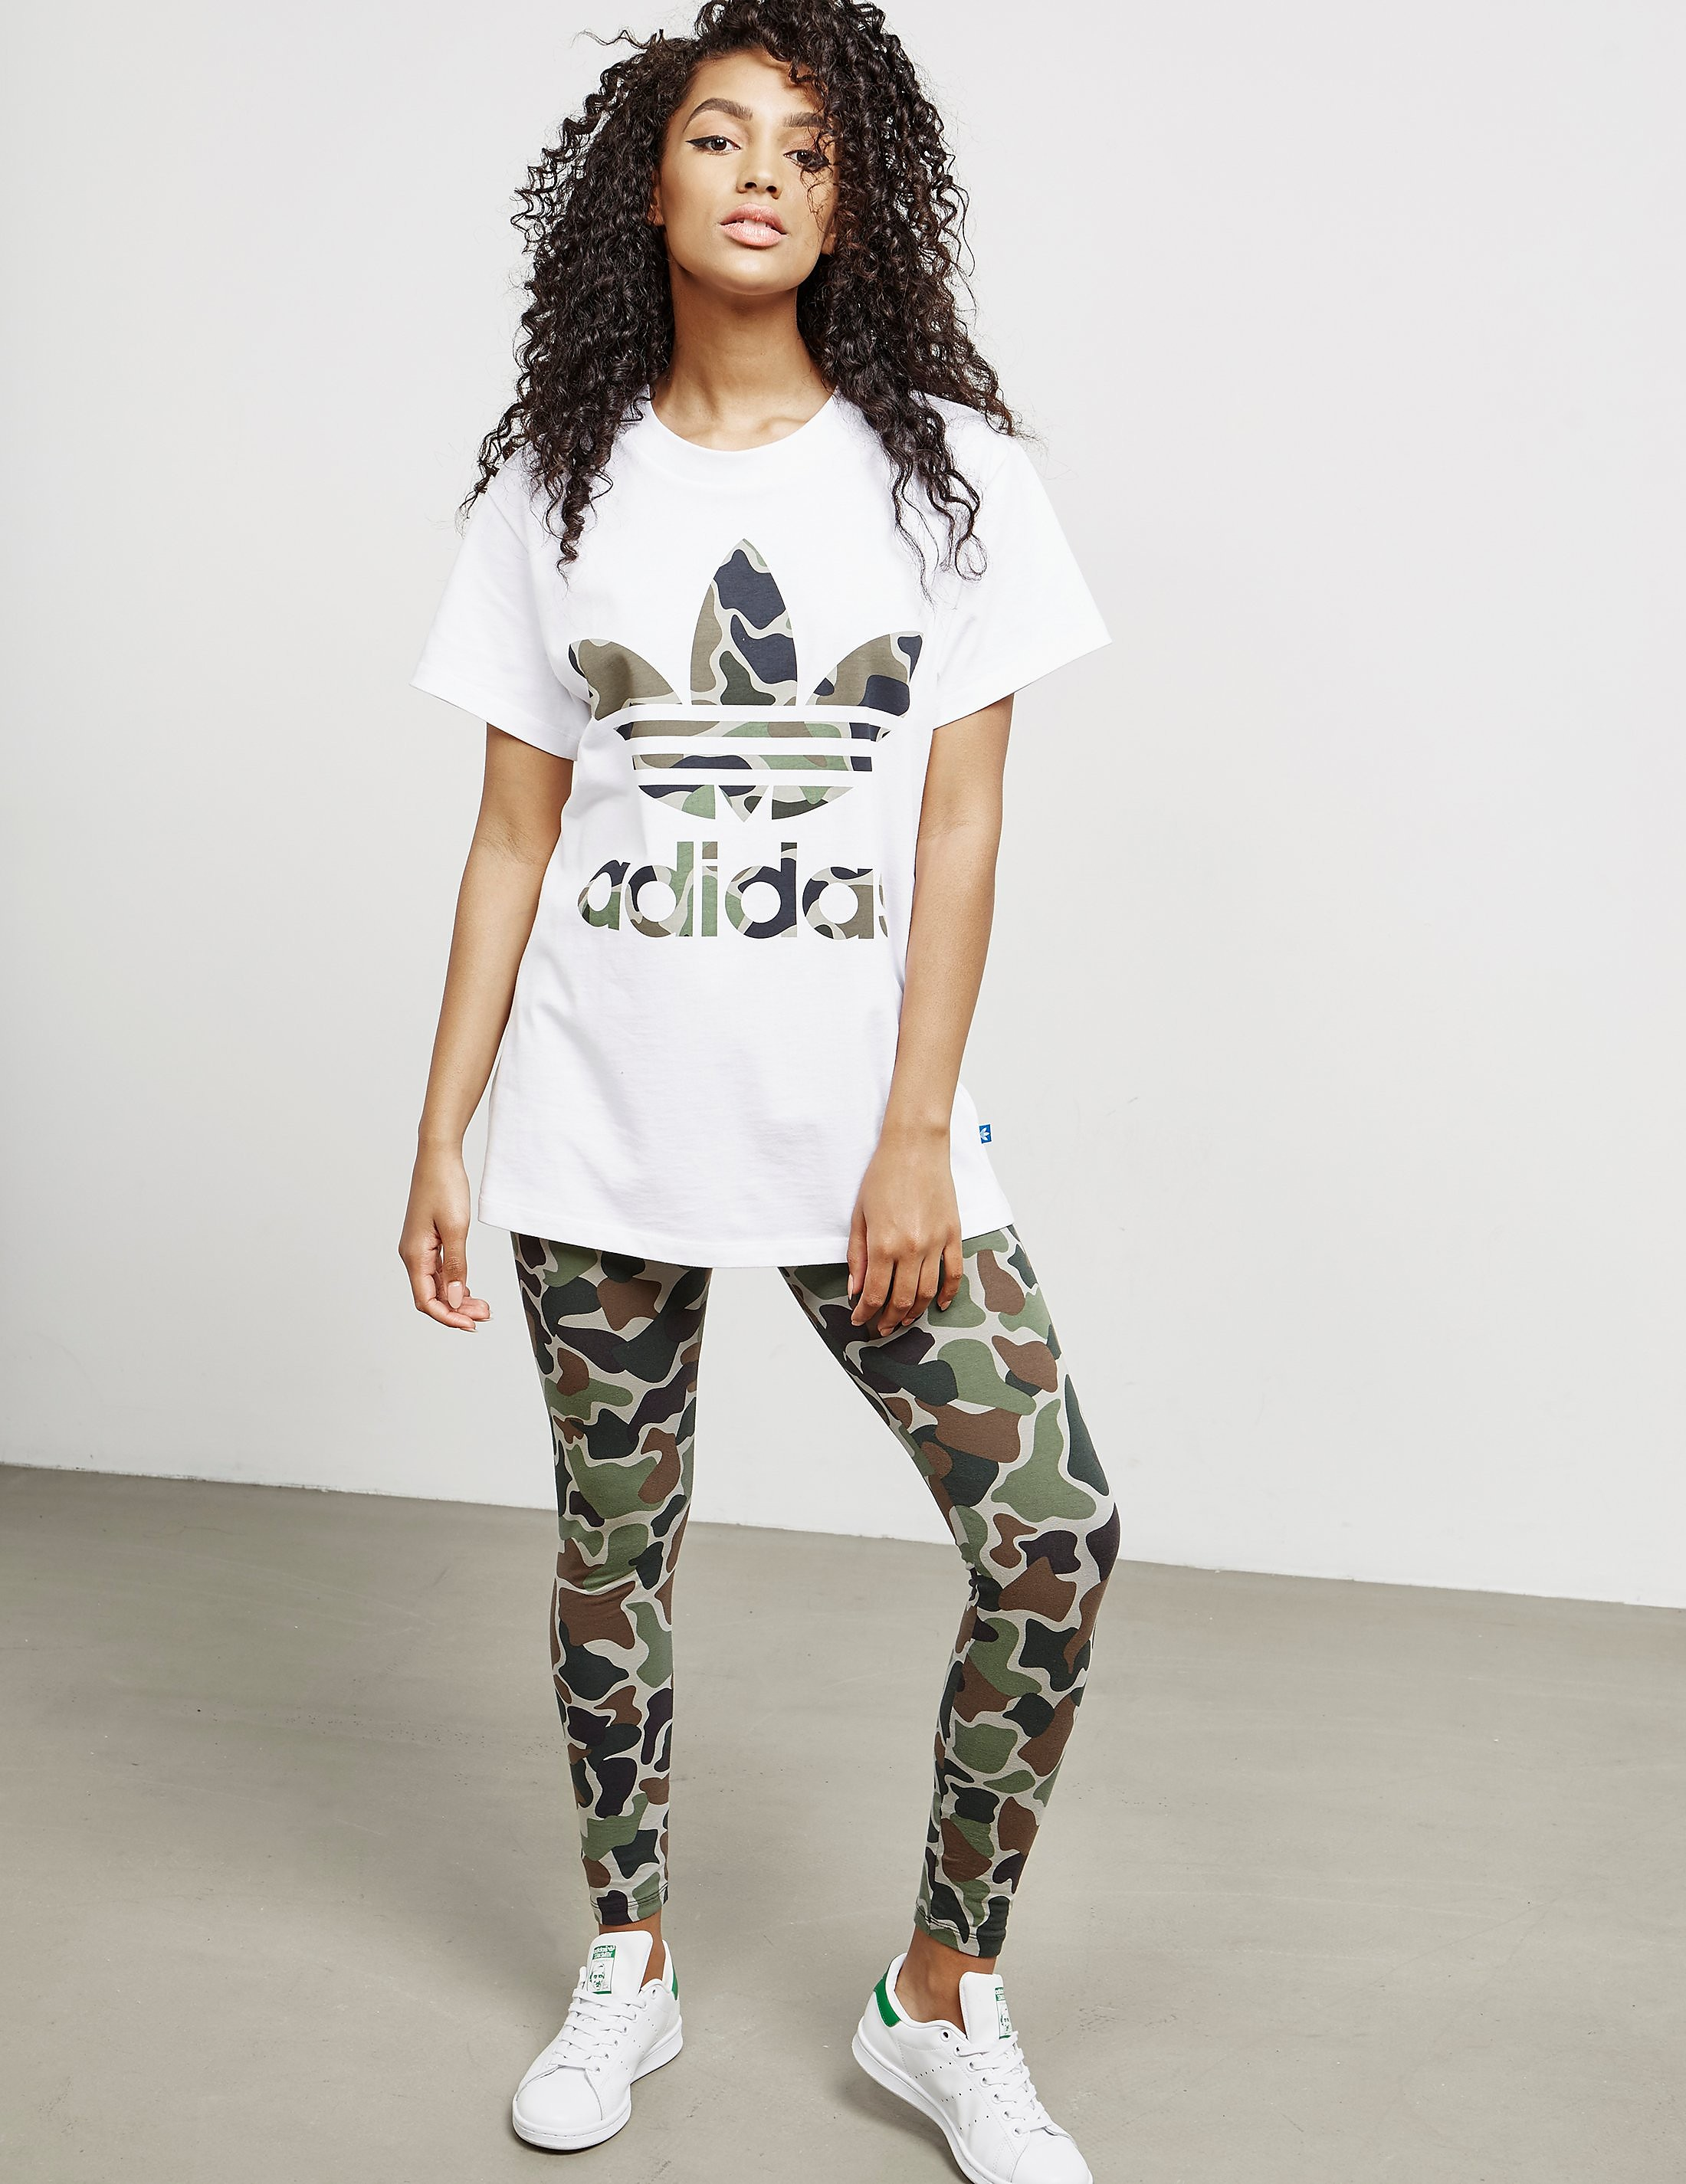 adidas Originals Big Trefoil Short Sleeve T-Shirt